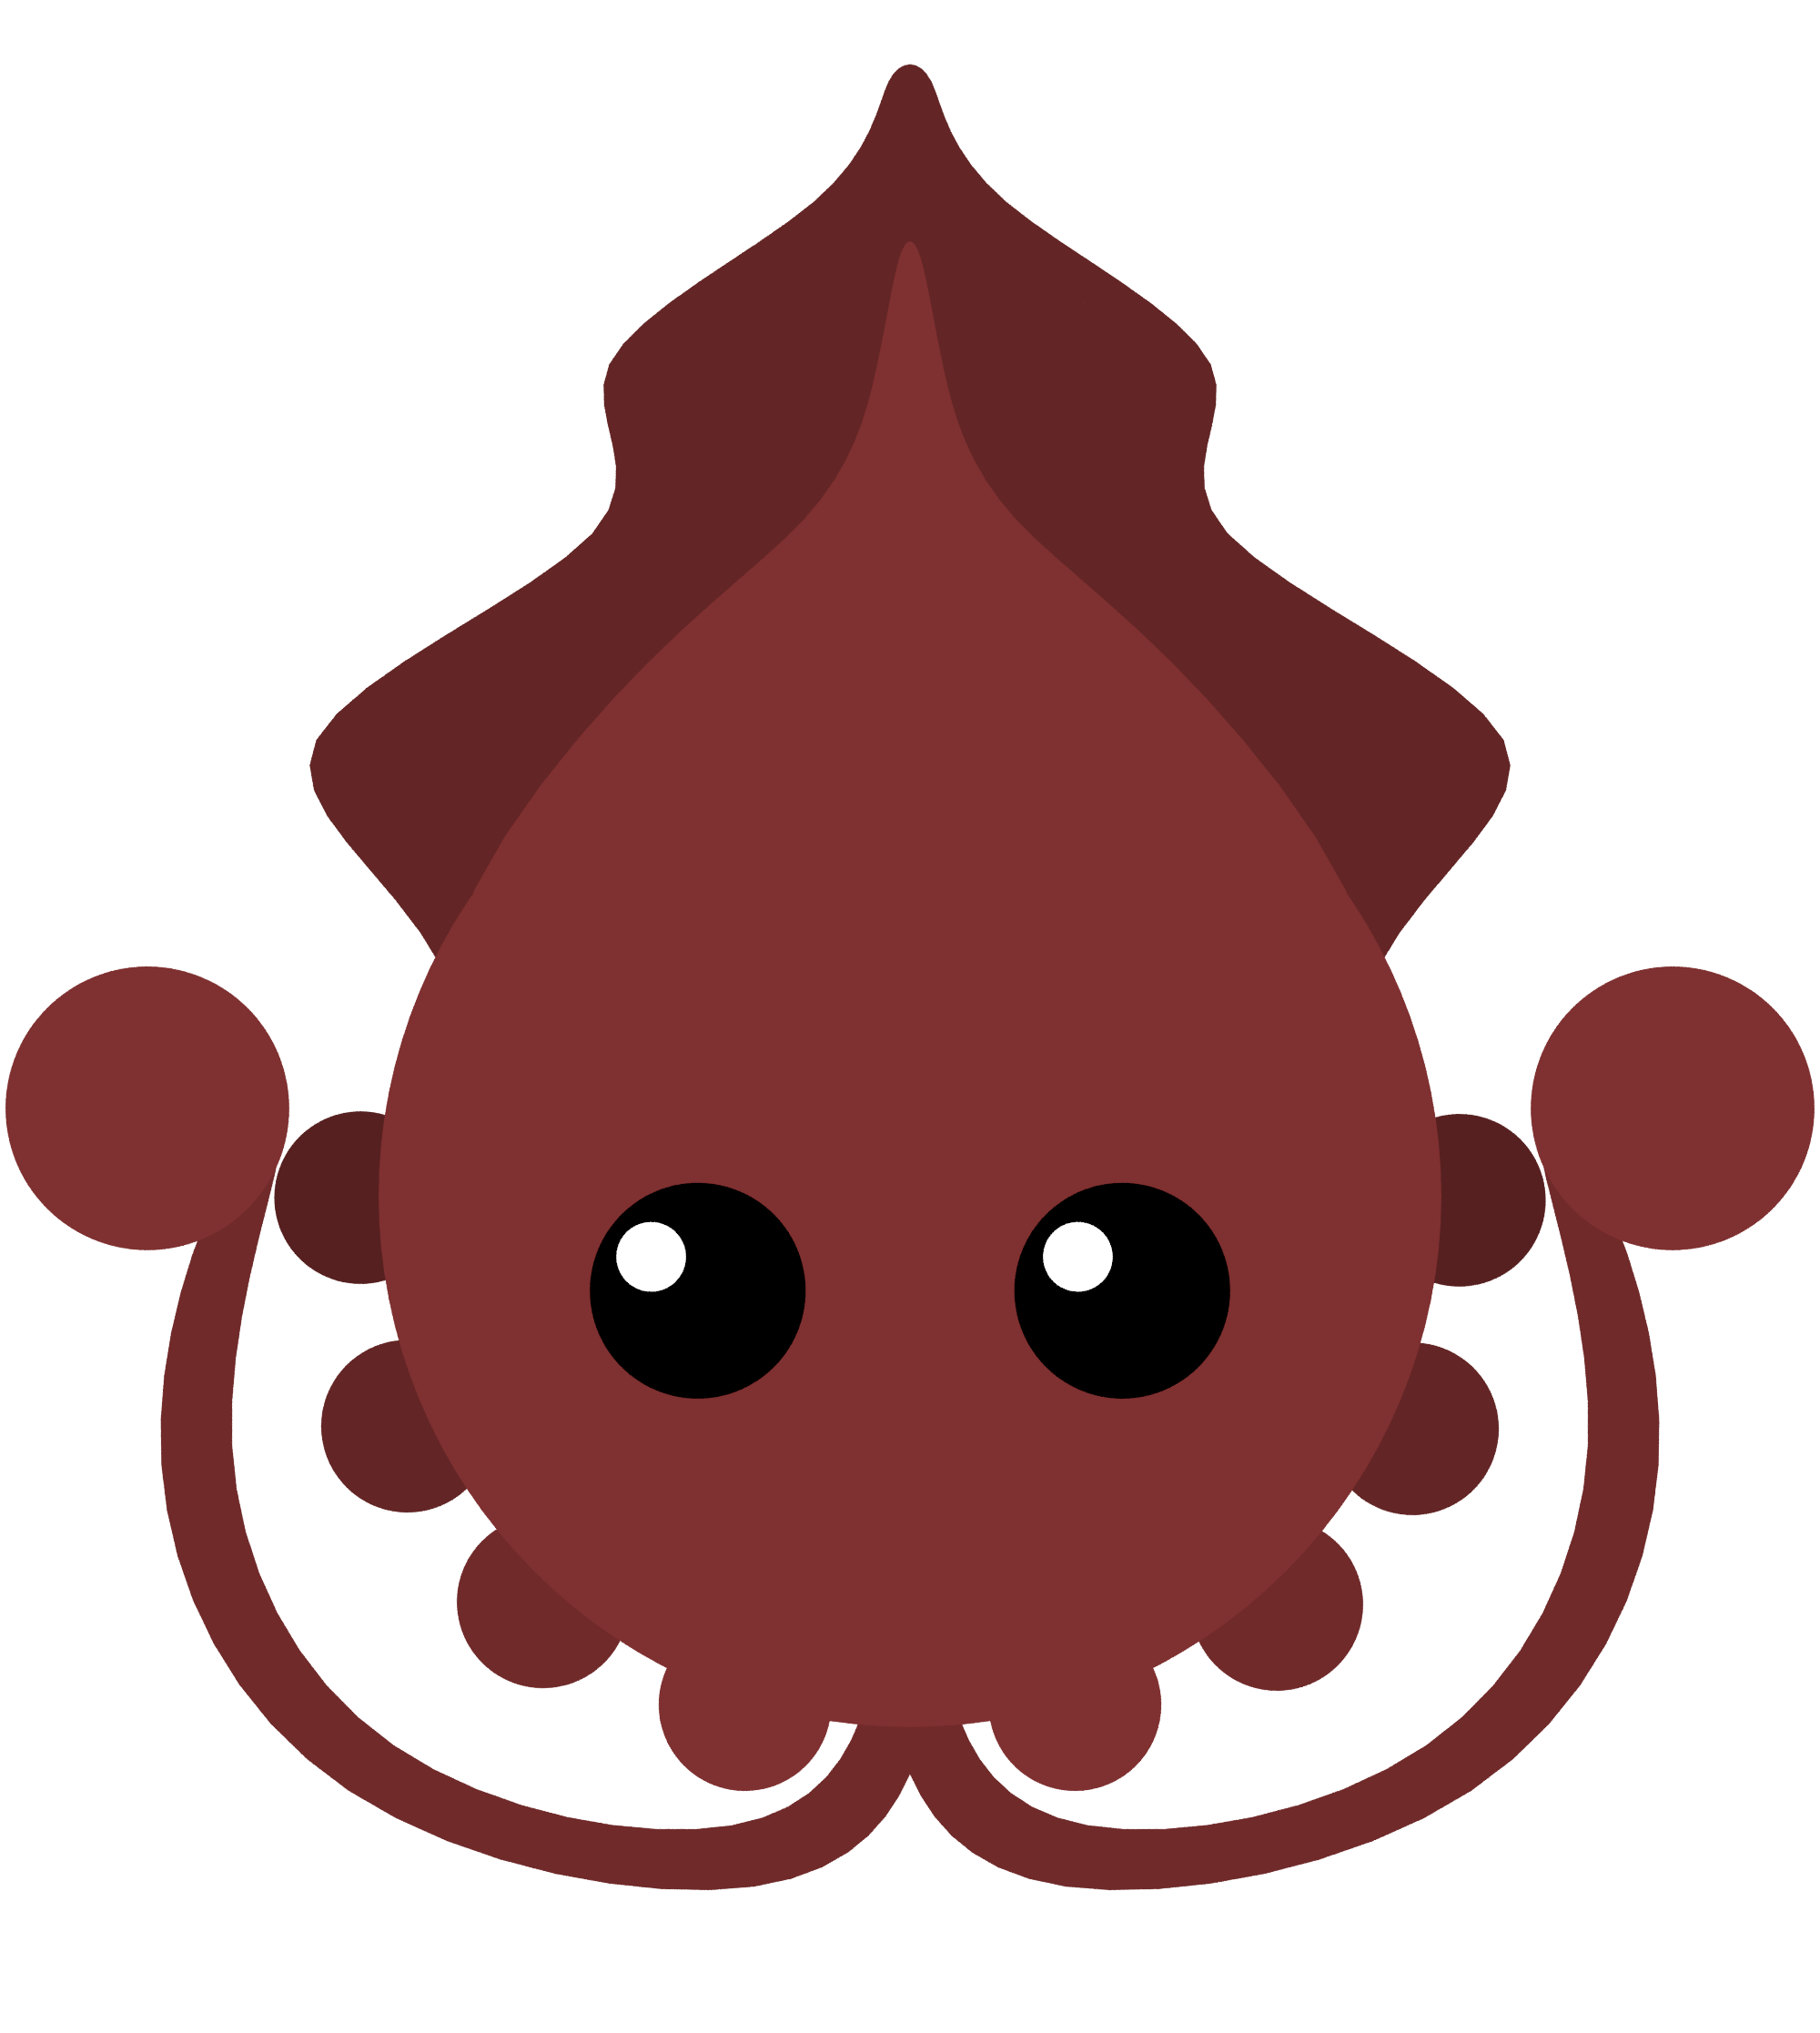 Giant squid png. Clipart at getdrawings com